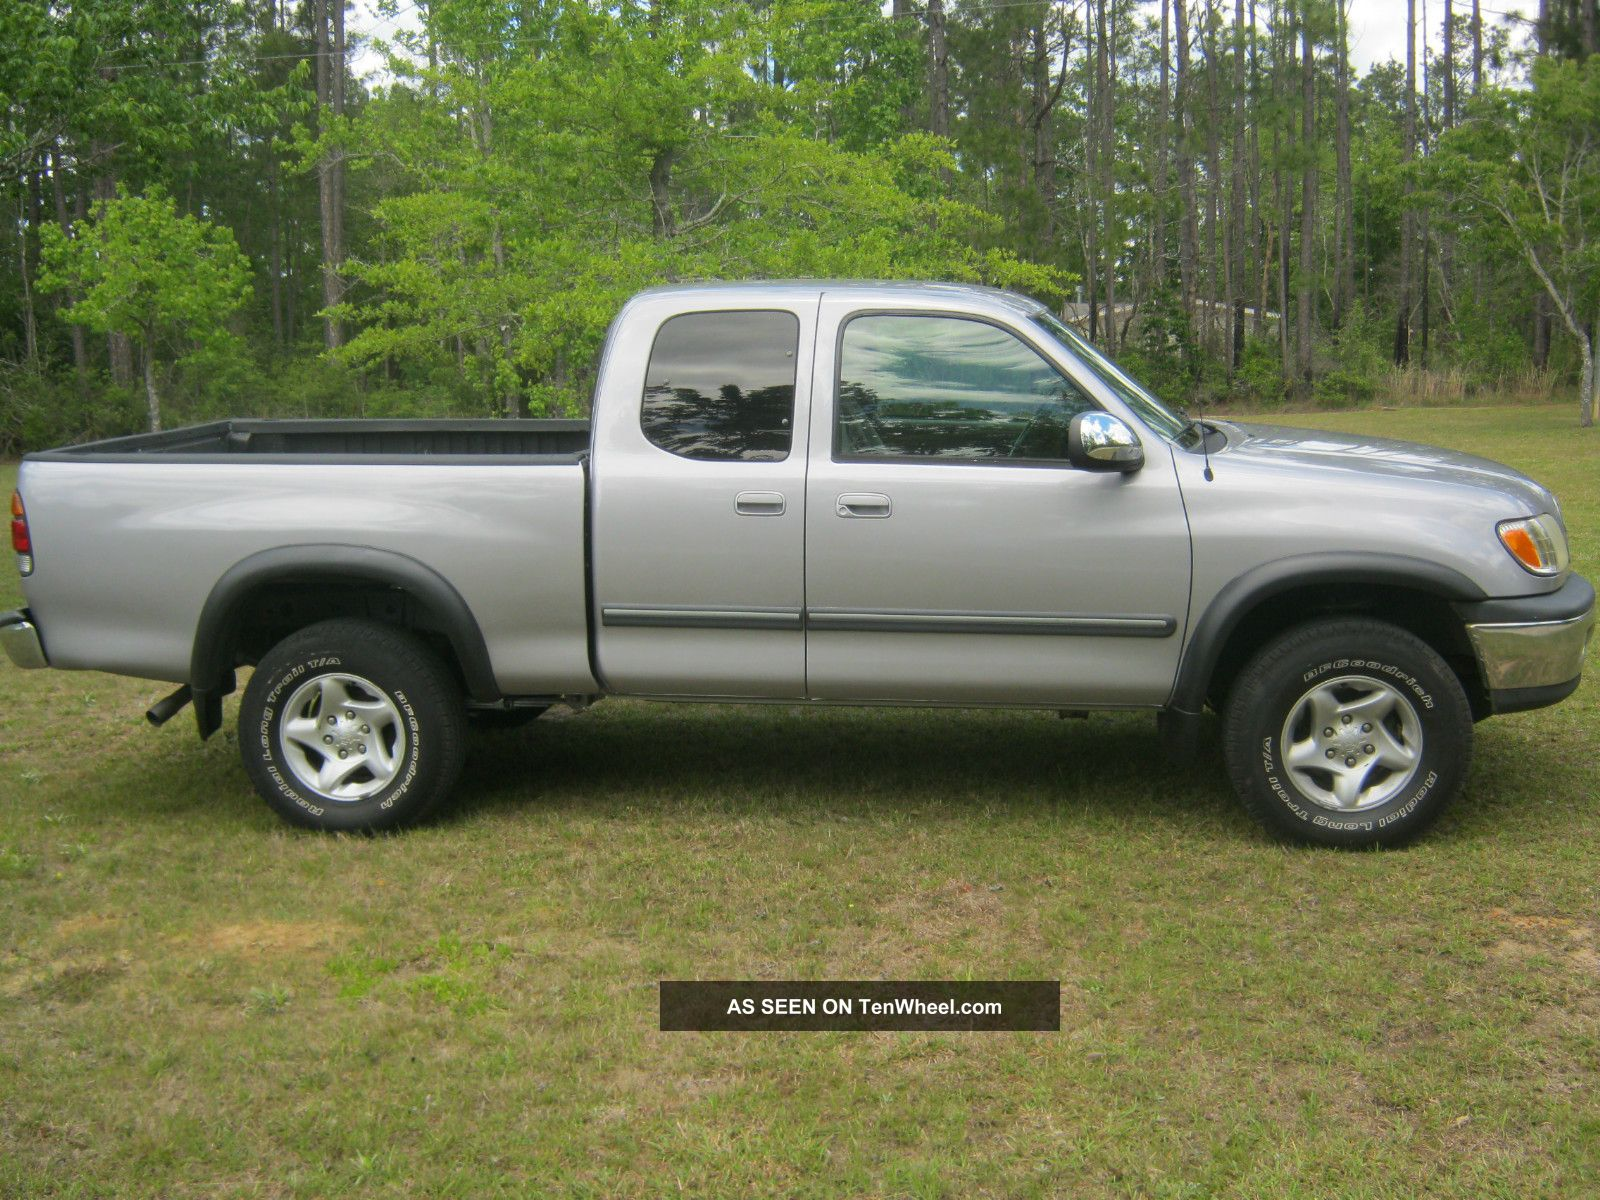 2002 toyota tundra ext cab pickup newer engine. Black Bedroom Furniture Sets. Home Design Ideas